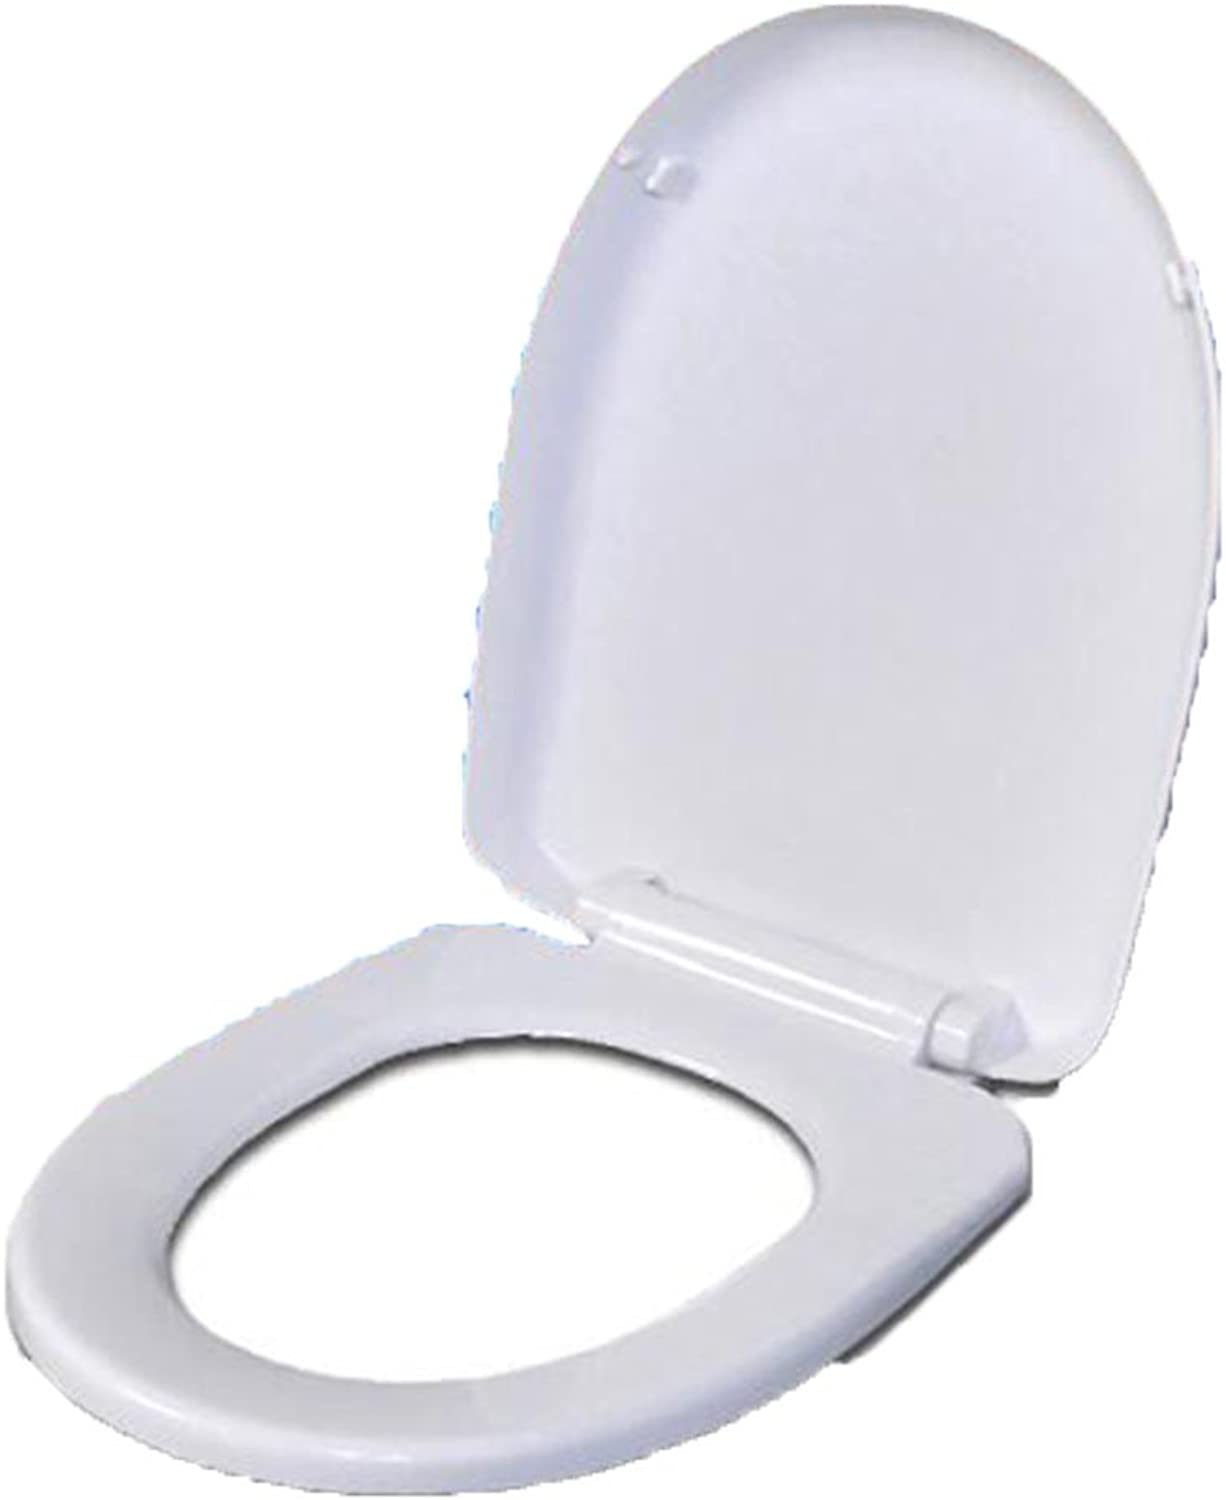 Toilet Seat U Soft Close Toilet Cover With Zinc Hinge For Bathroom Washroom Restroom,White-342  436mm